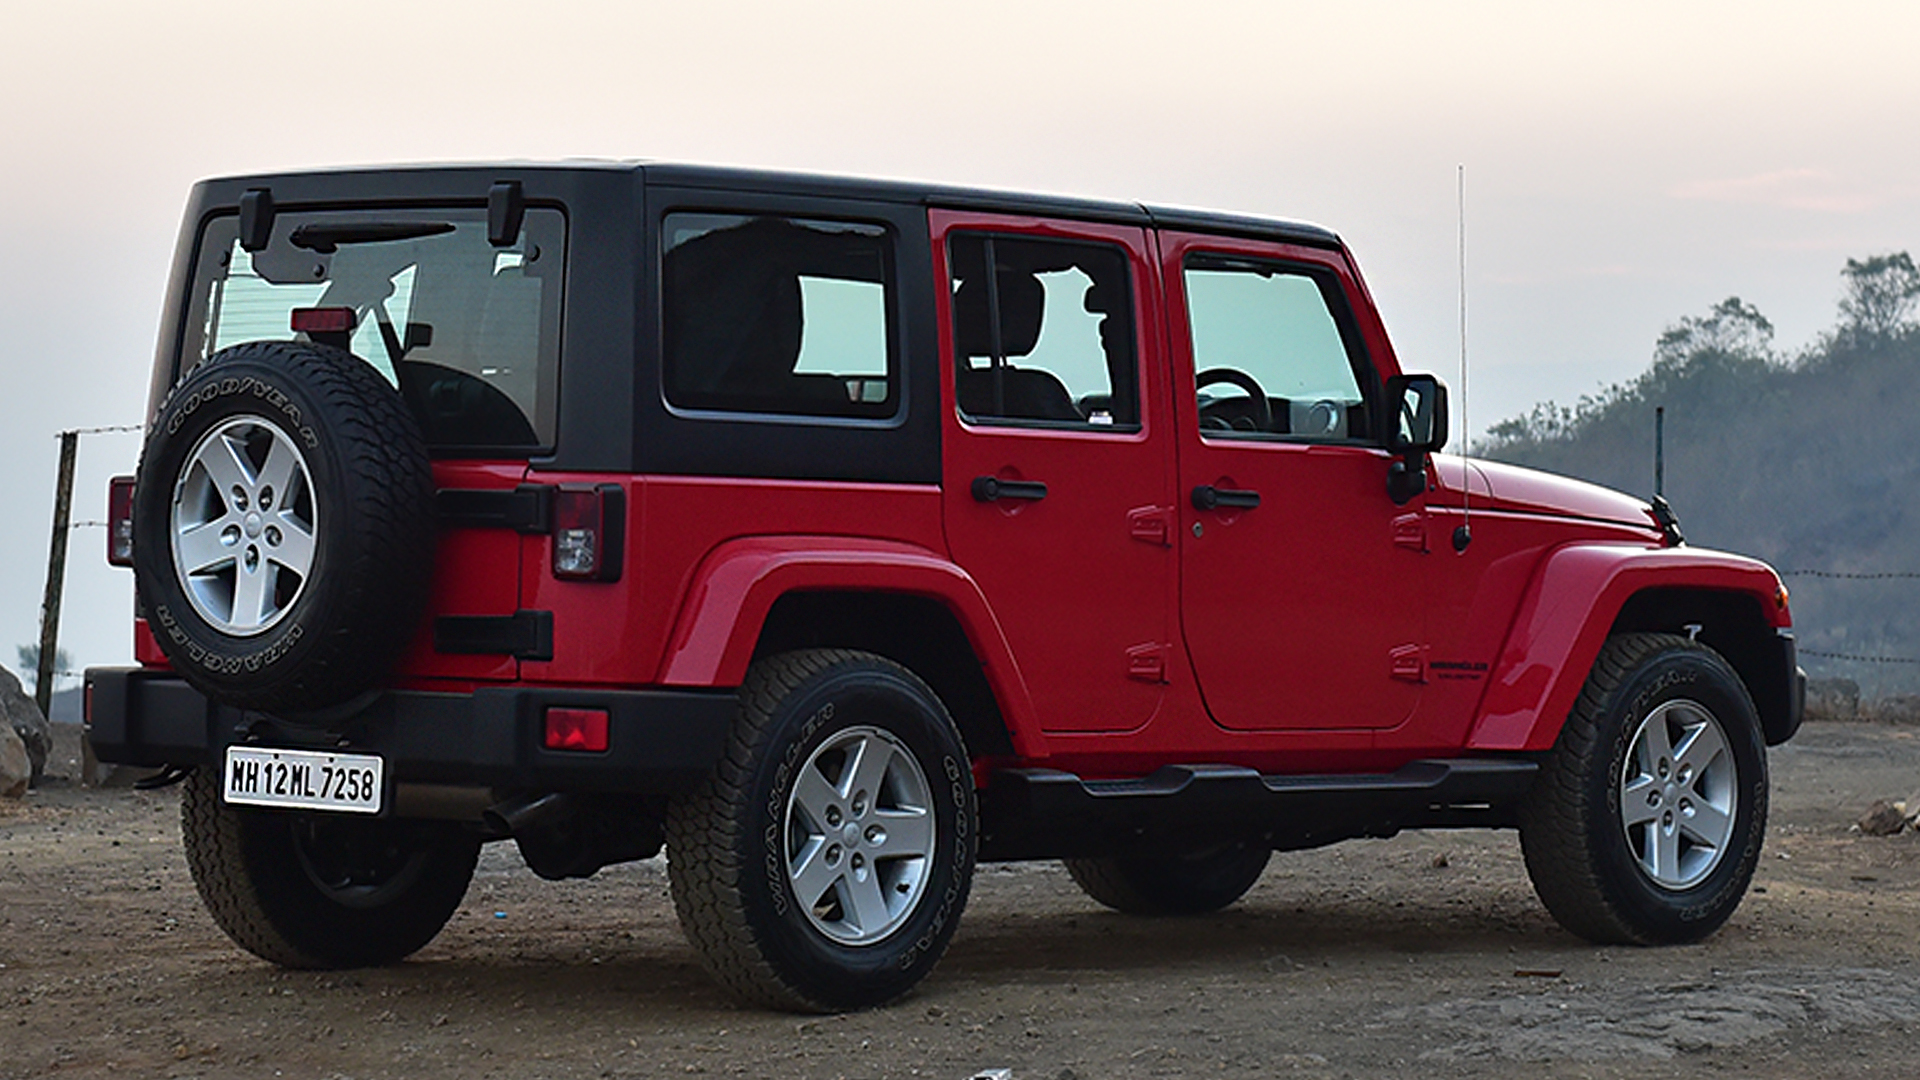 jeep wrangler 2017 price mileage reviews specification gallery overdrive. Black Bedroom Furniture Sets. Home Design Ideas